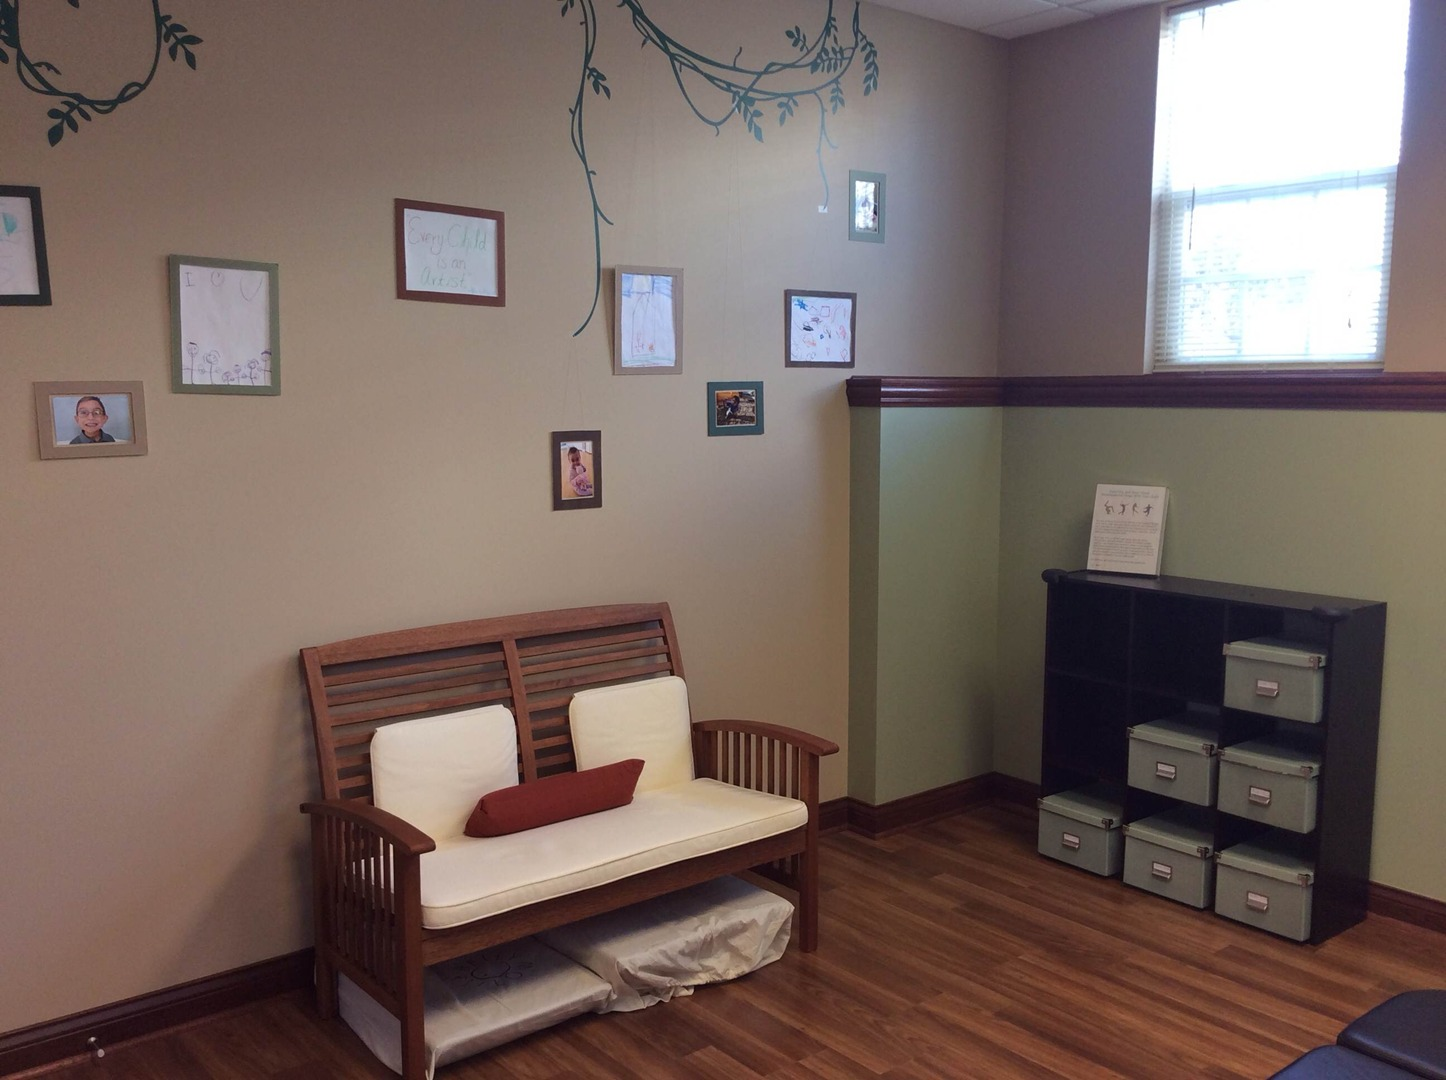 Chiropractic room for kids, moms and babies